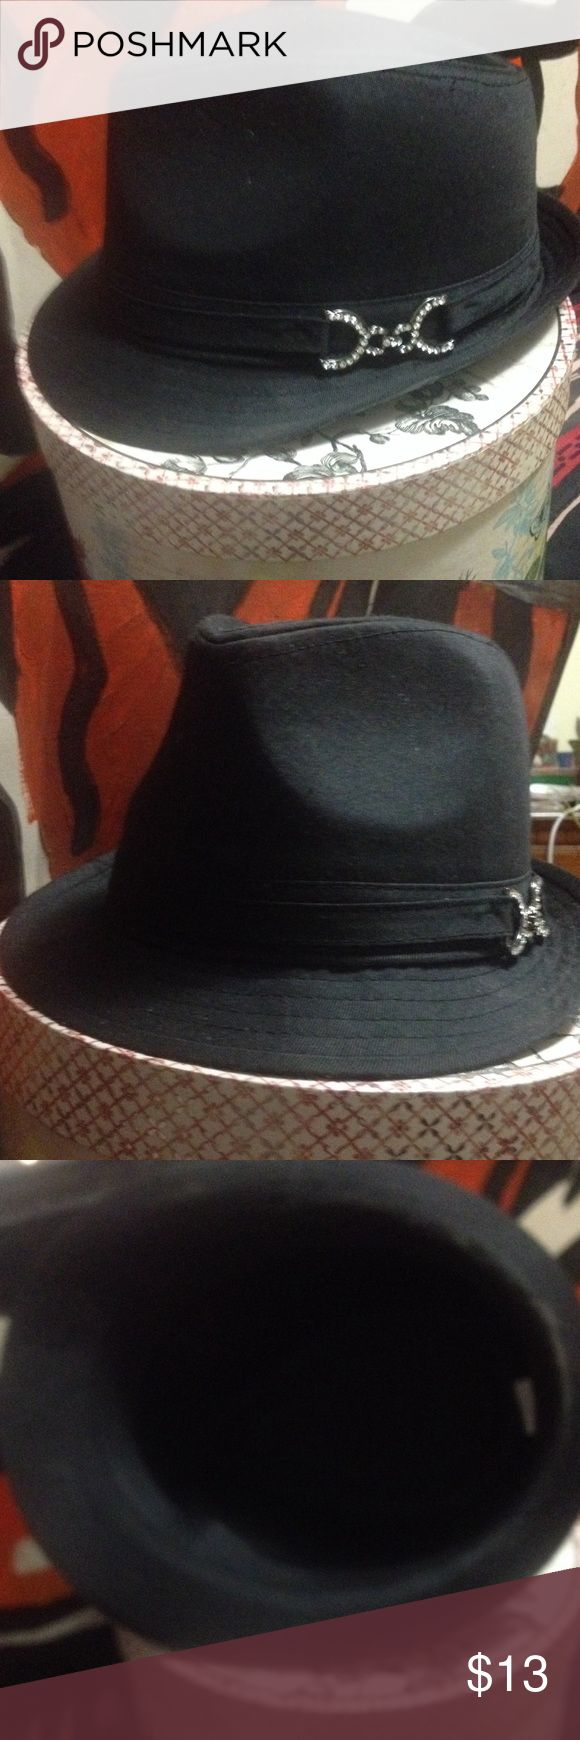 Black Glitter Fedora This is a nice black Fedora!! Like new, bought and wore once. I love he look of fedoras, but they just aren't me. I have 2 more listed that I purchased with this one. I never wore those 2, they are still new!!! This would be hear to wear with anything!!! Even in the bedroom!!! Lol Other